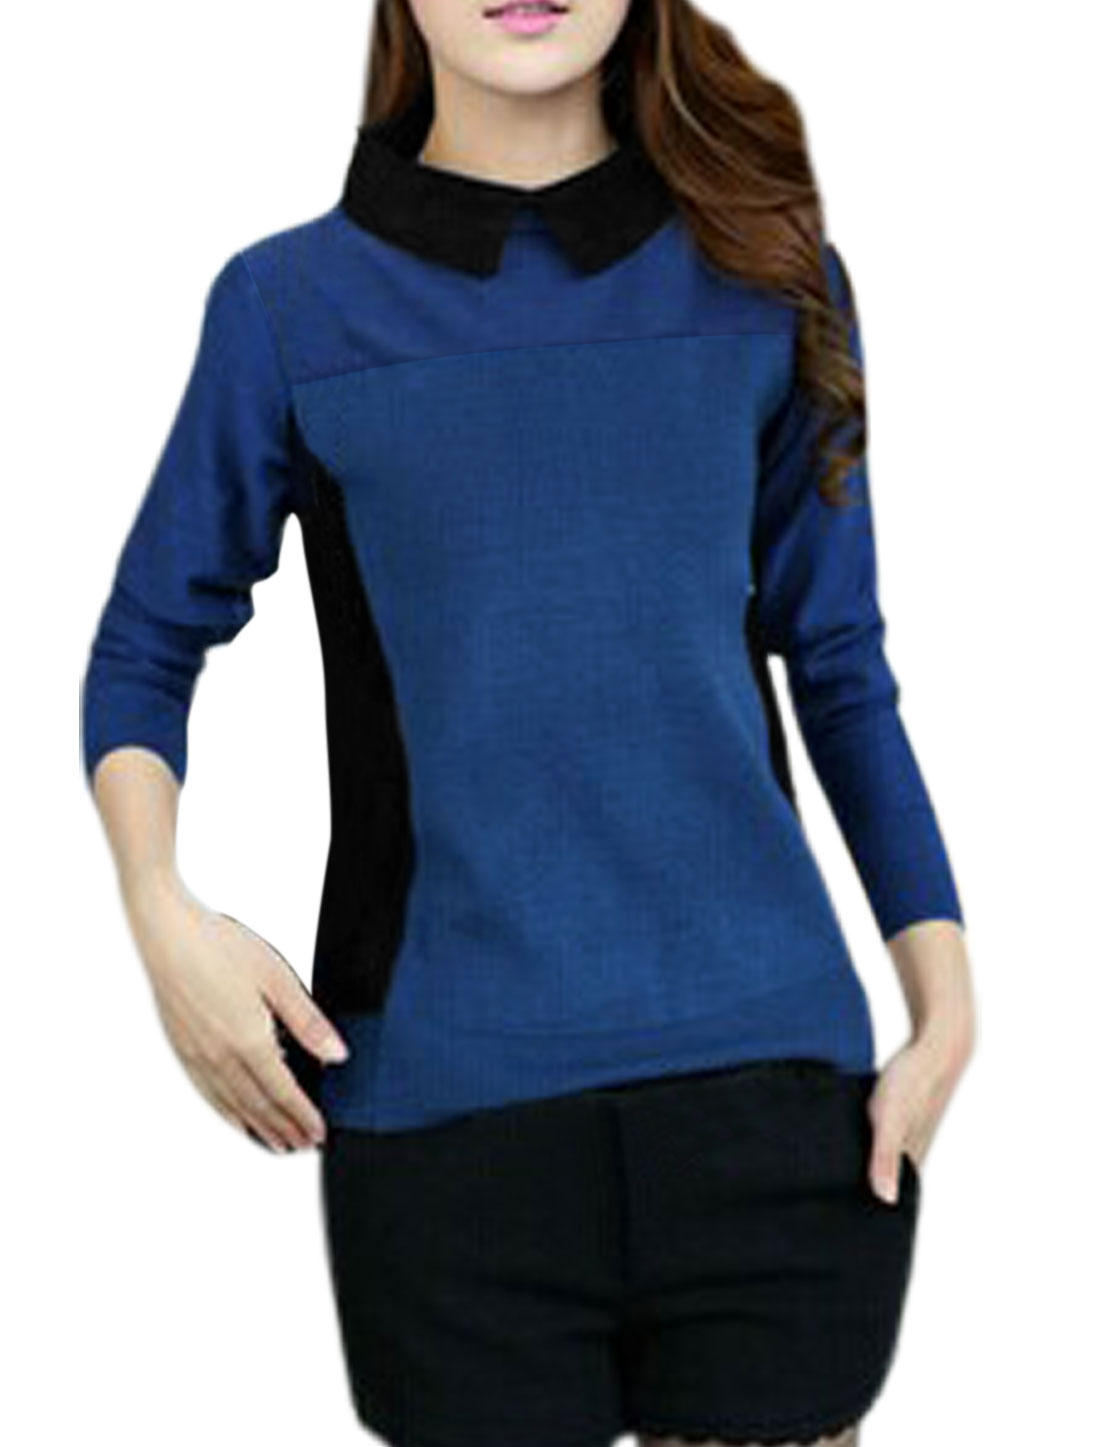 Women Slipover One Button Closure Back Leisure Knit Shirt Royal Blue S